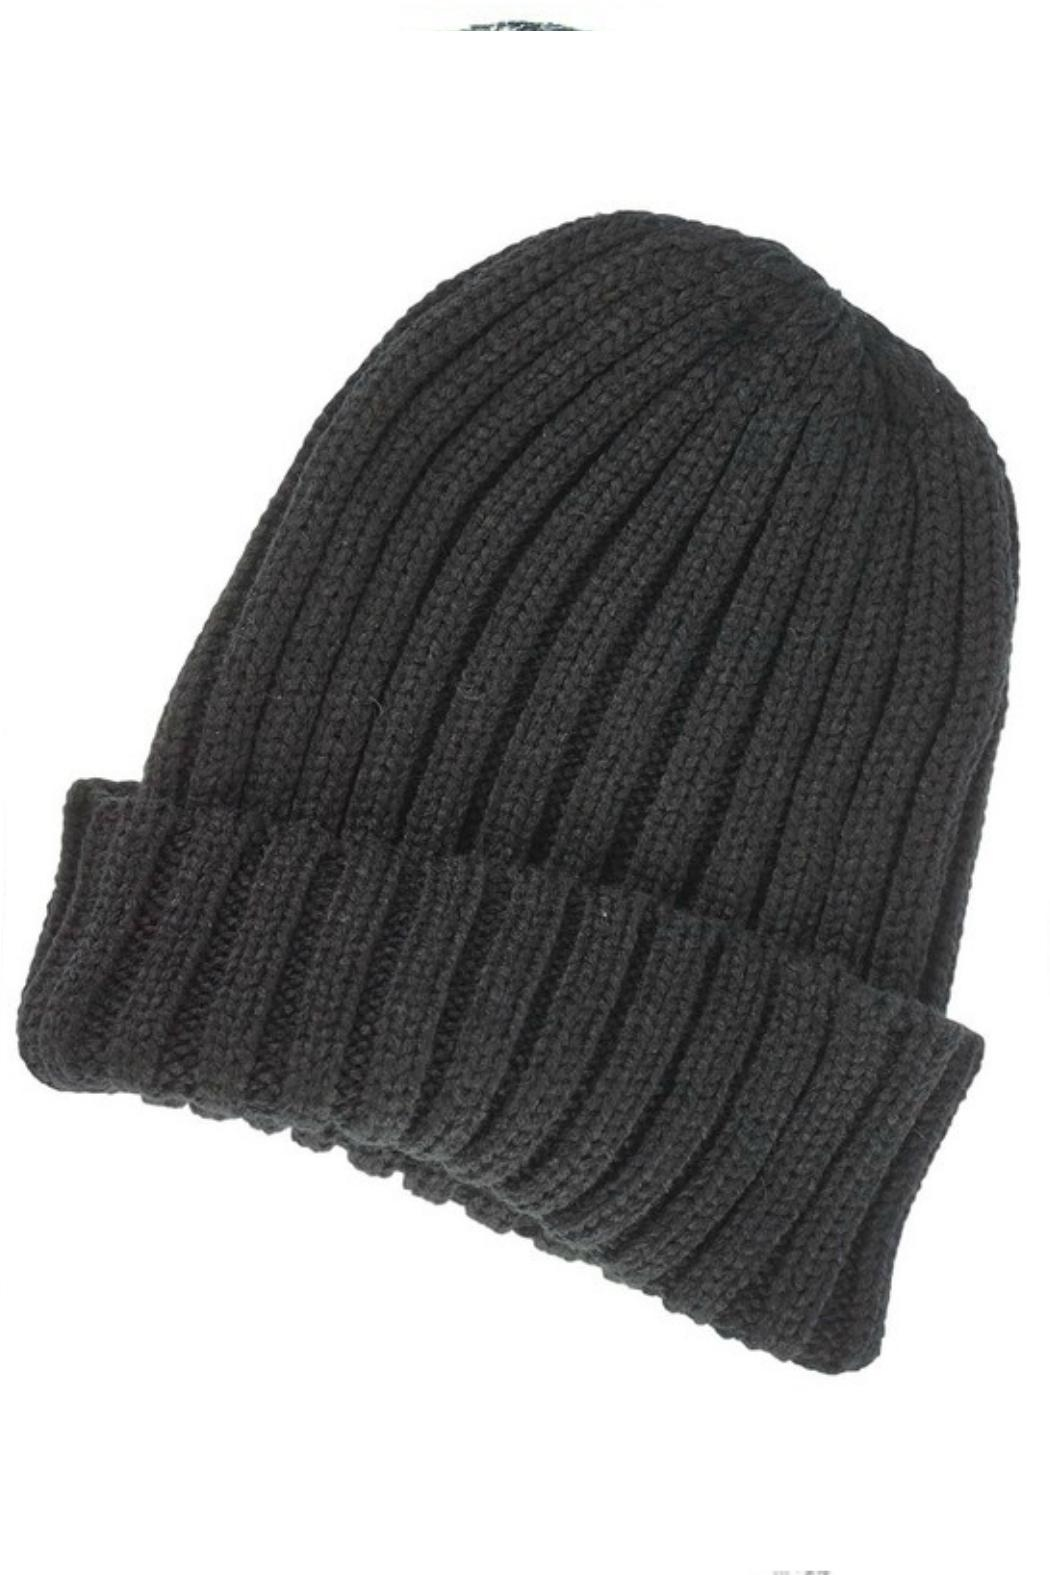 Olive & Pique Thick Ribbed Toque - Main Image